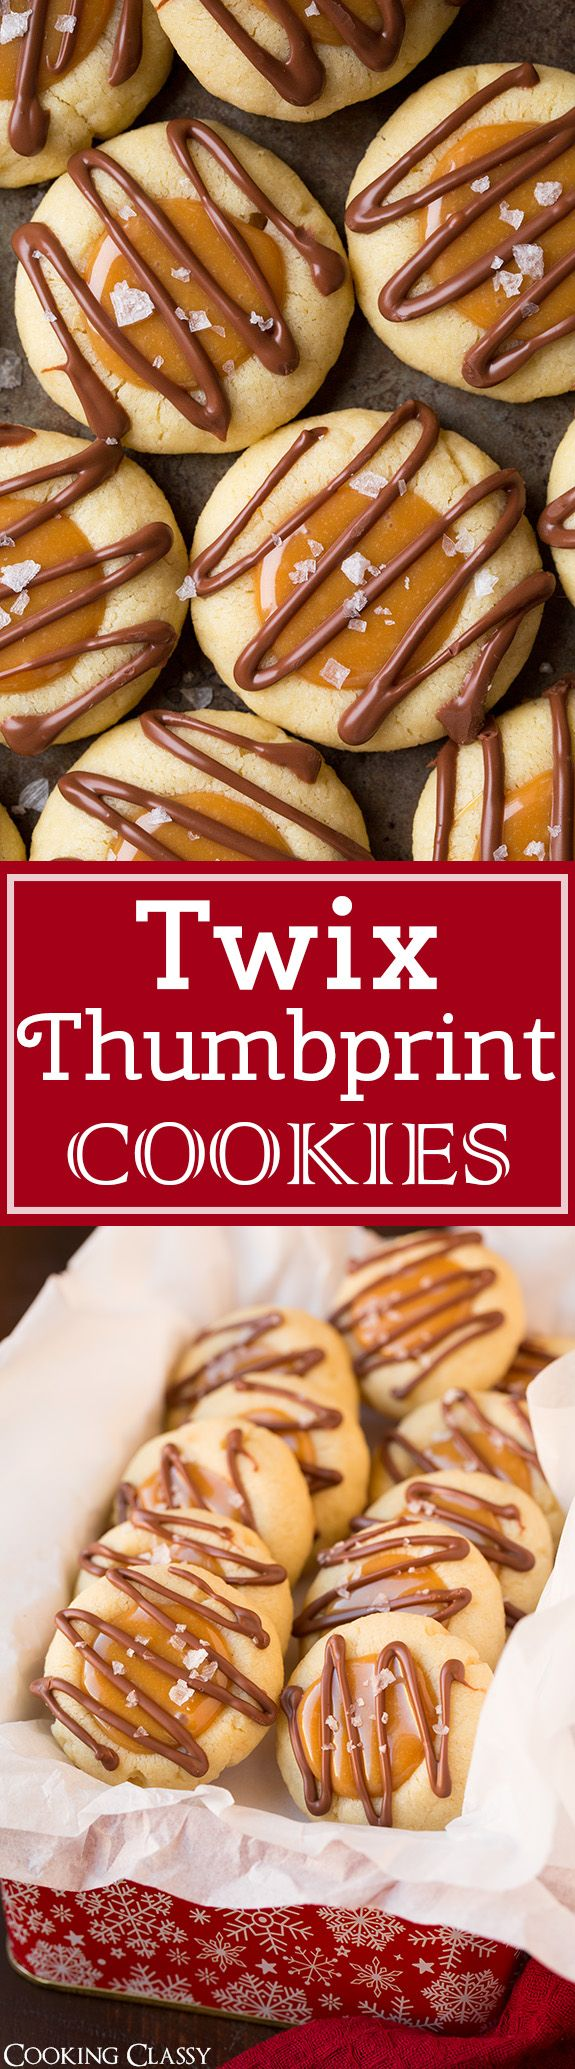 Twix Thumbprint Cookies - these are TO DIE FOR! Easy to make too! Sea salt is optional but I say it's a must! Makes them so much better!